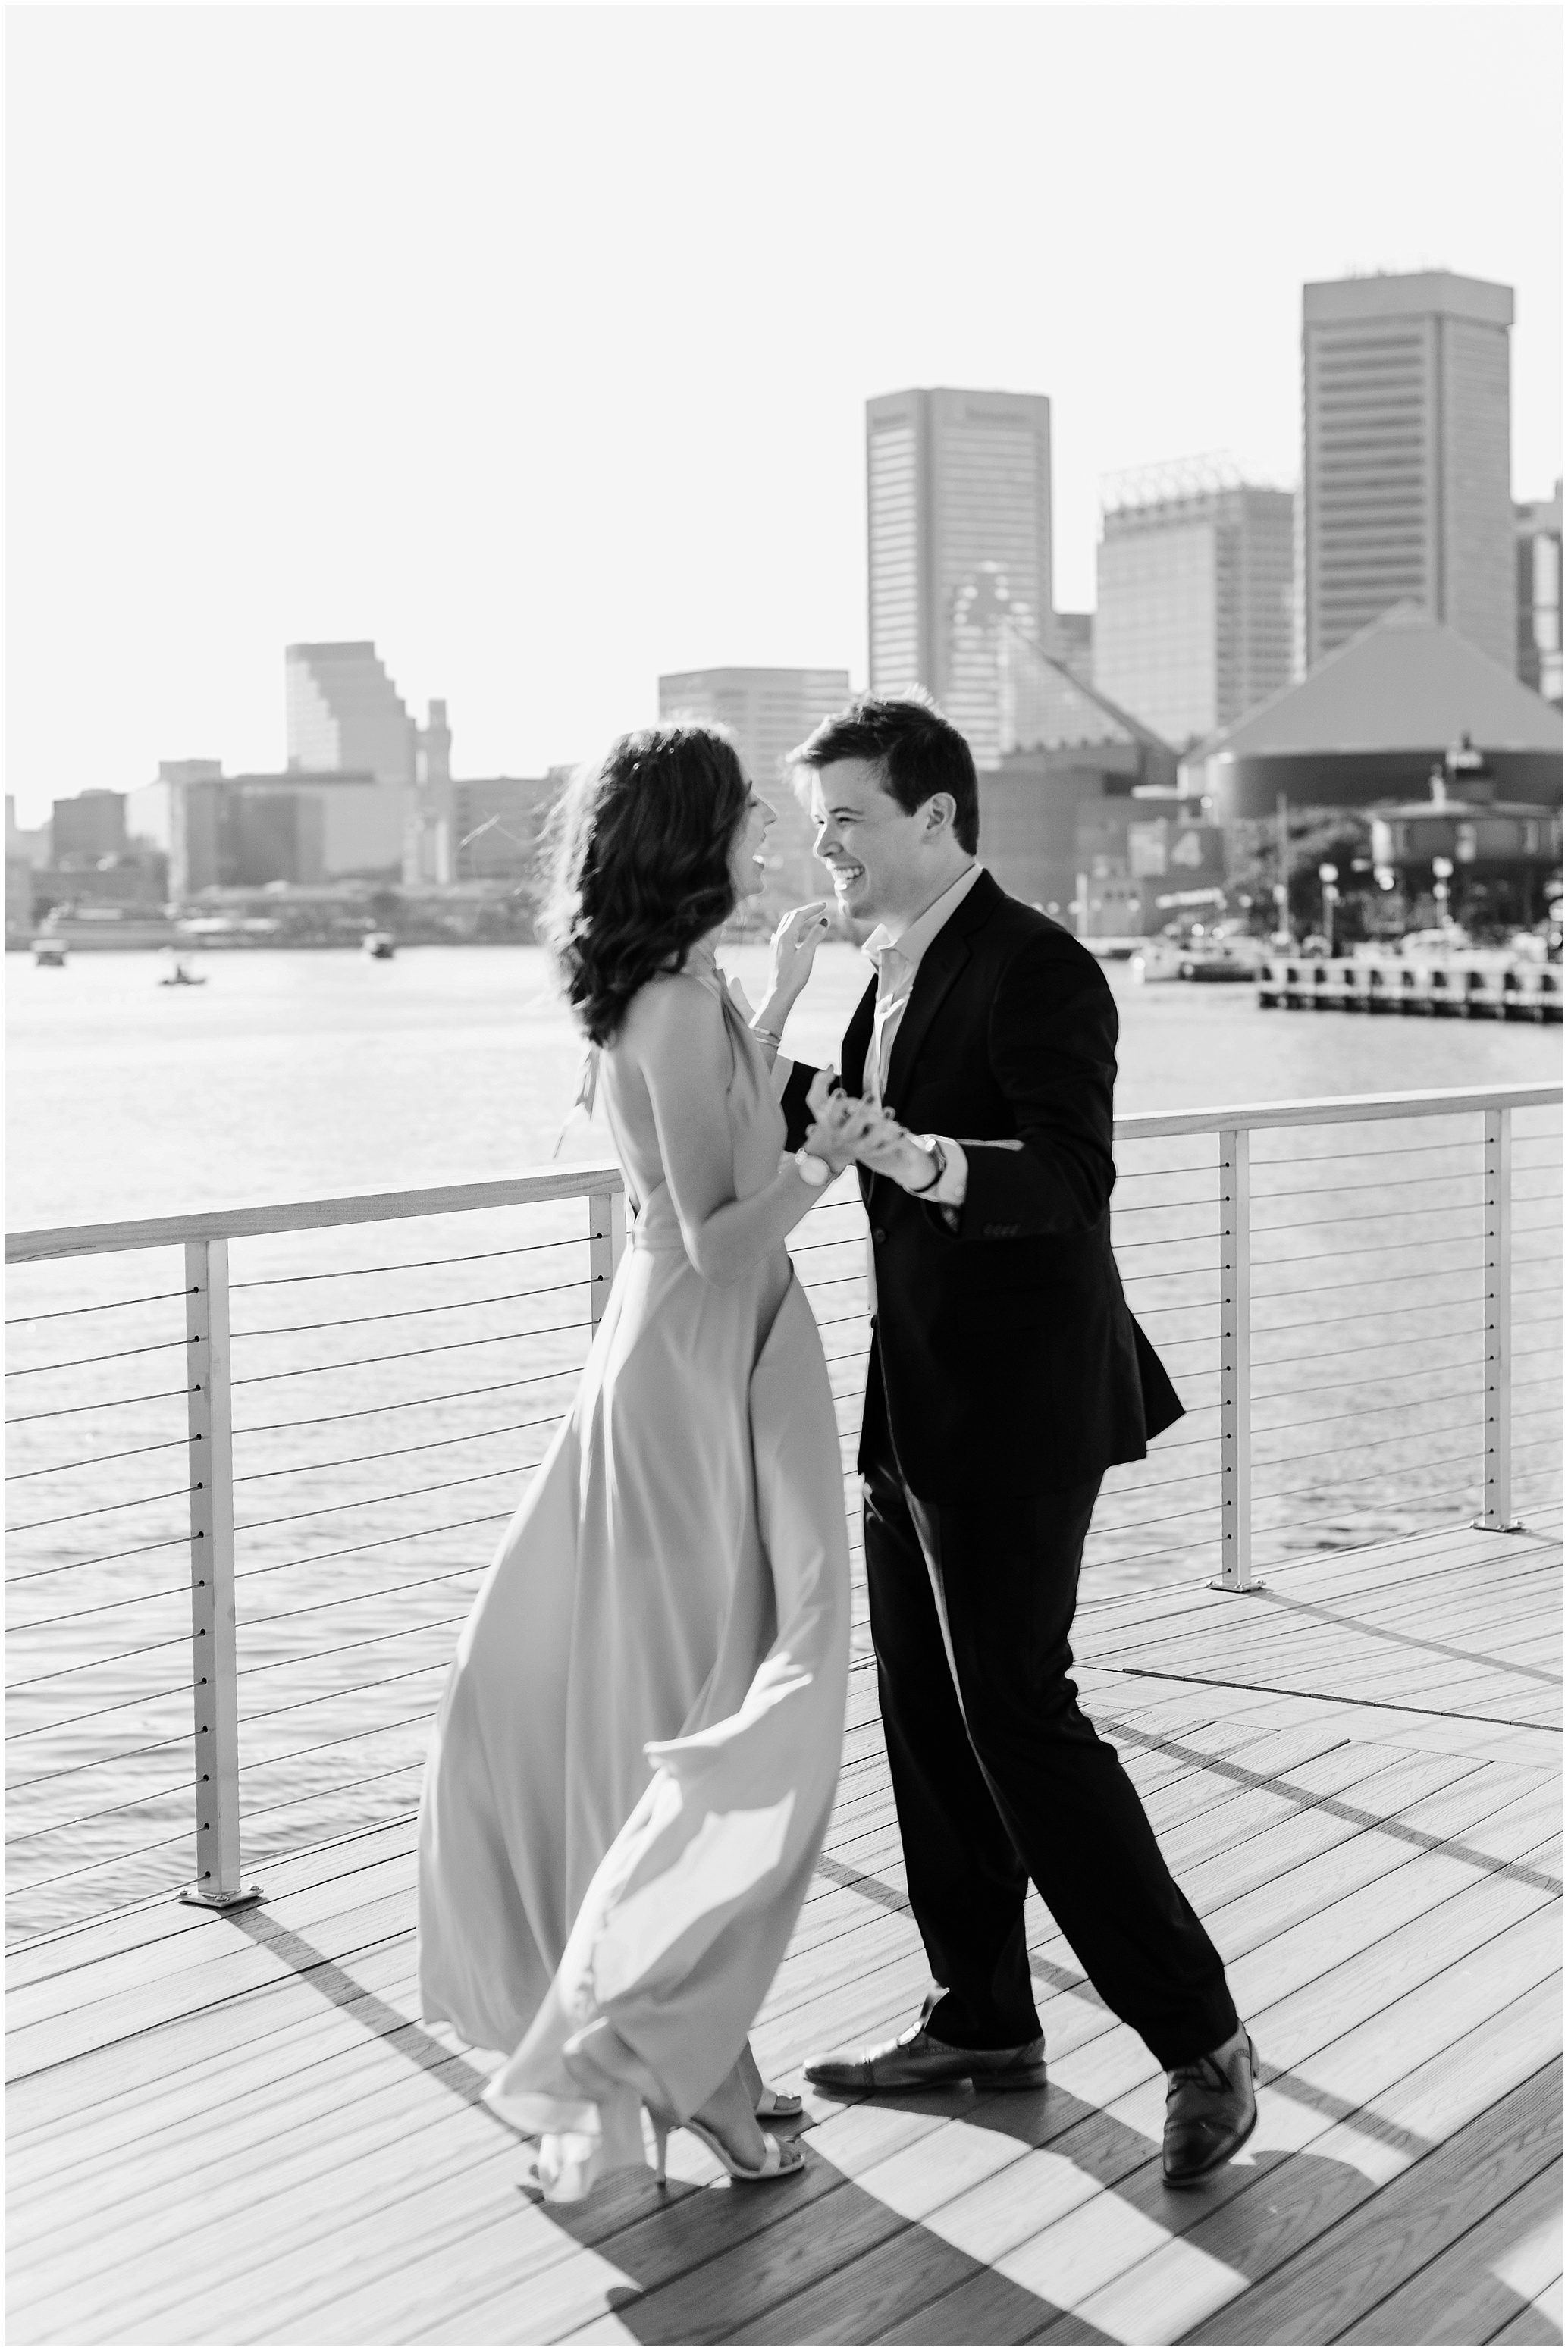 Hannah Leigh Photography Baltimore City, MD Engagement Session_5629.jpg